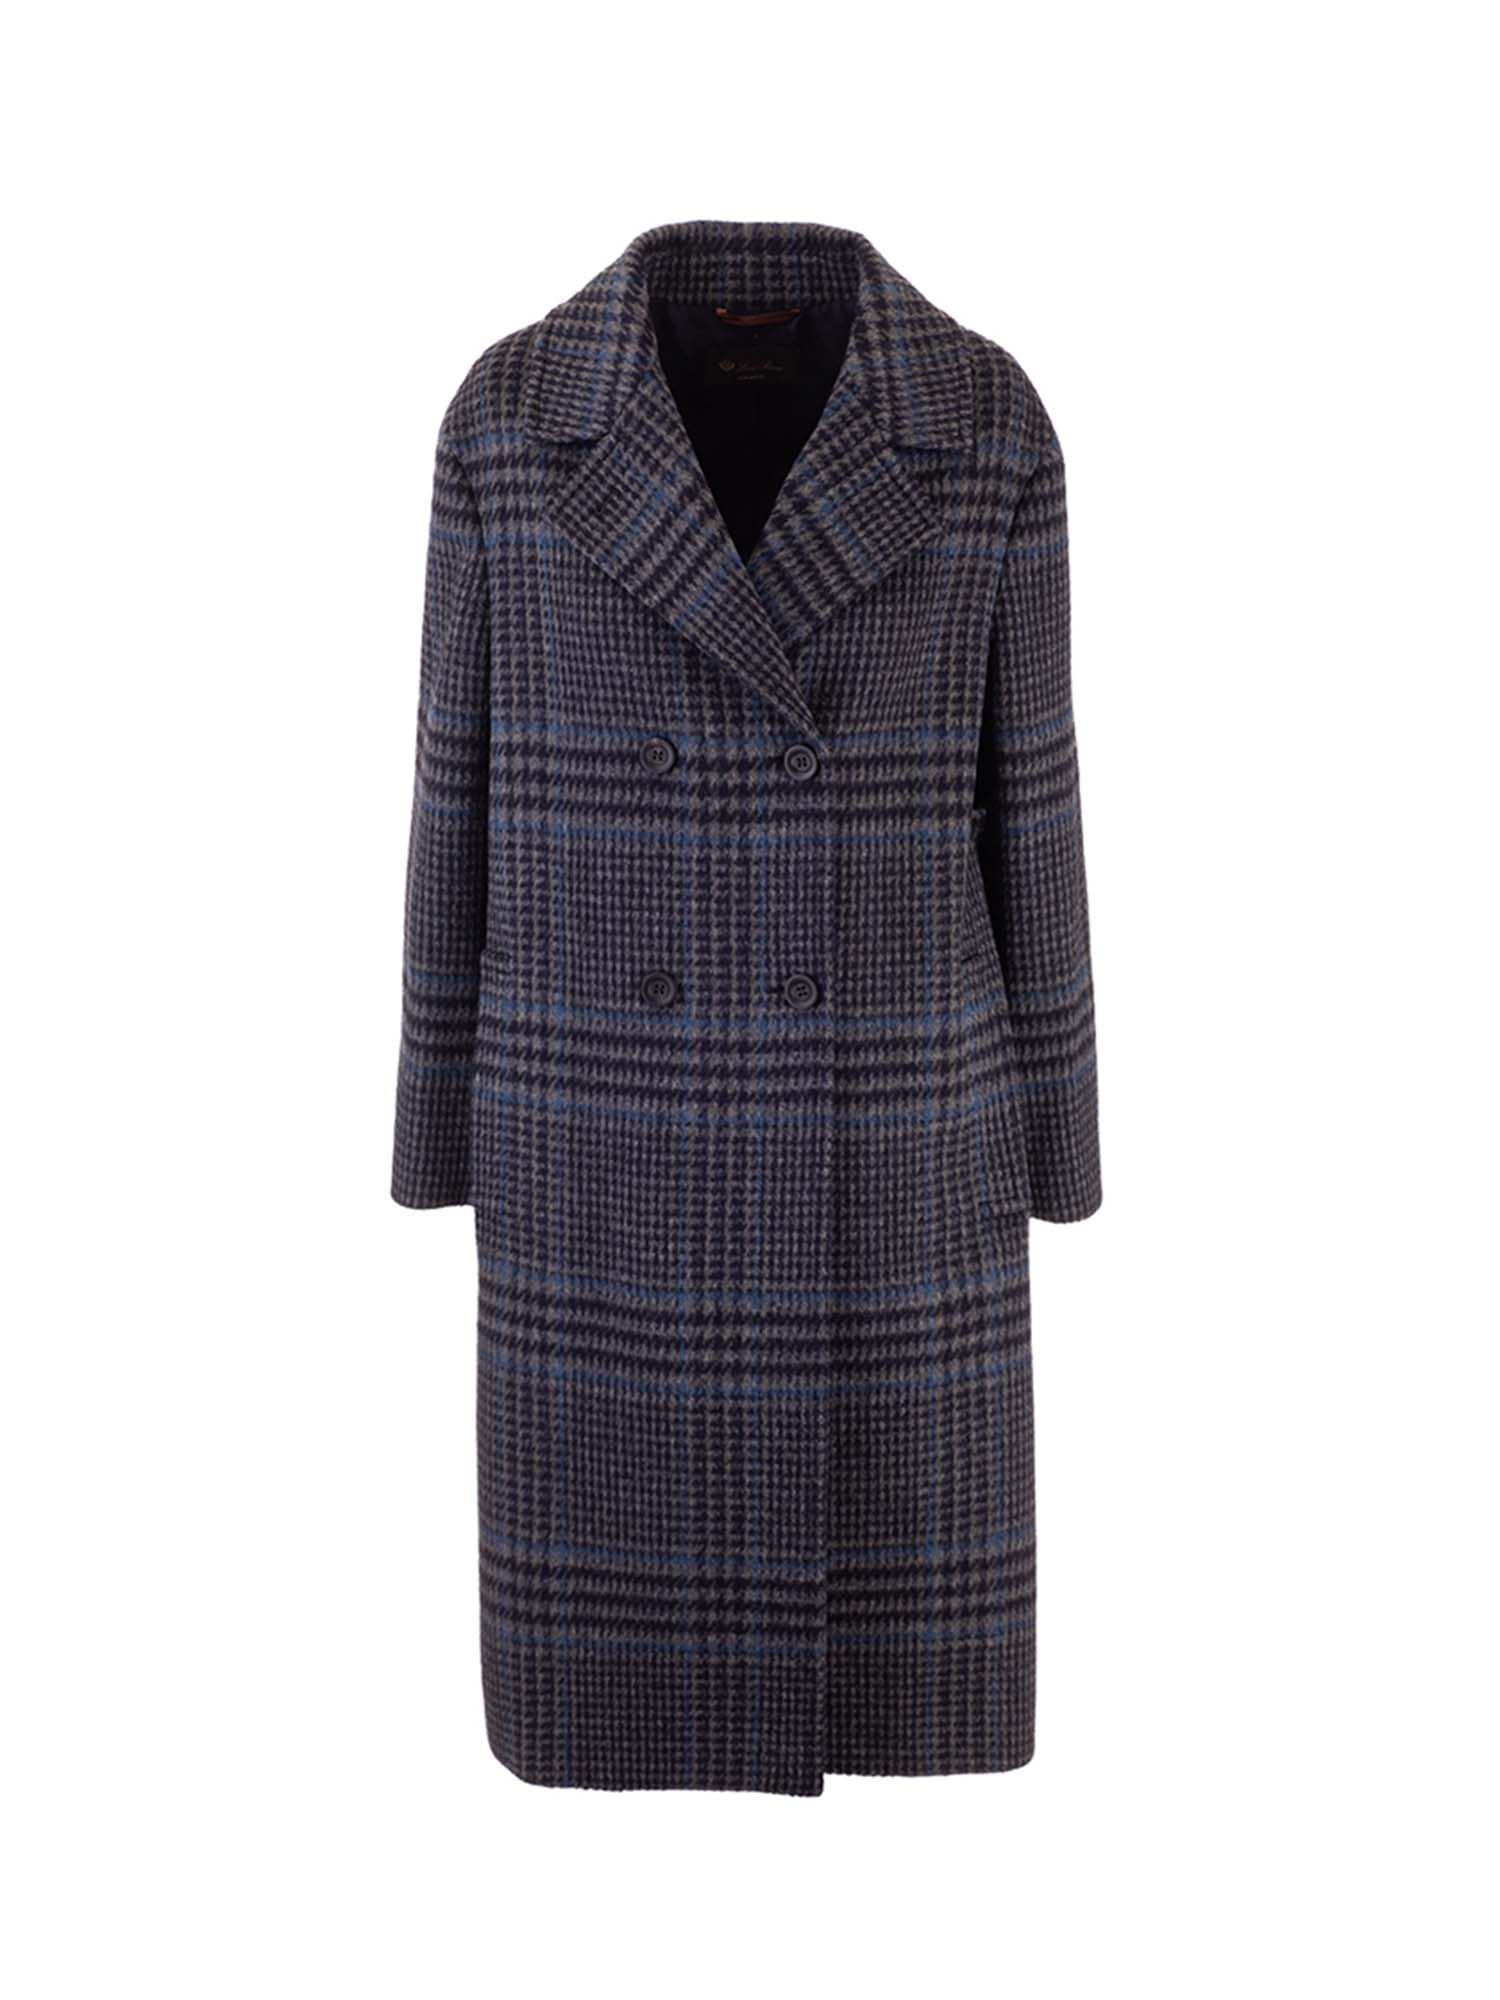 LORO PIANA Silks MICHAEL COAT IN GREY